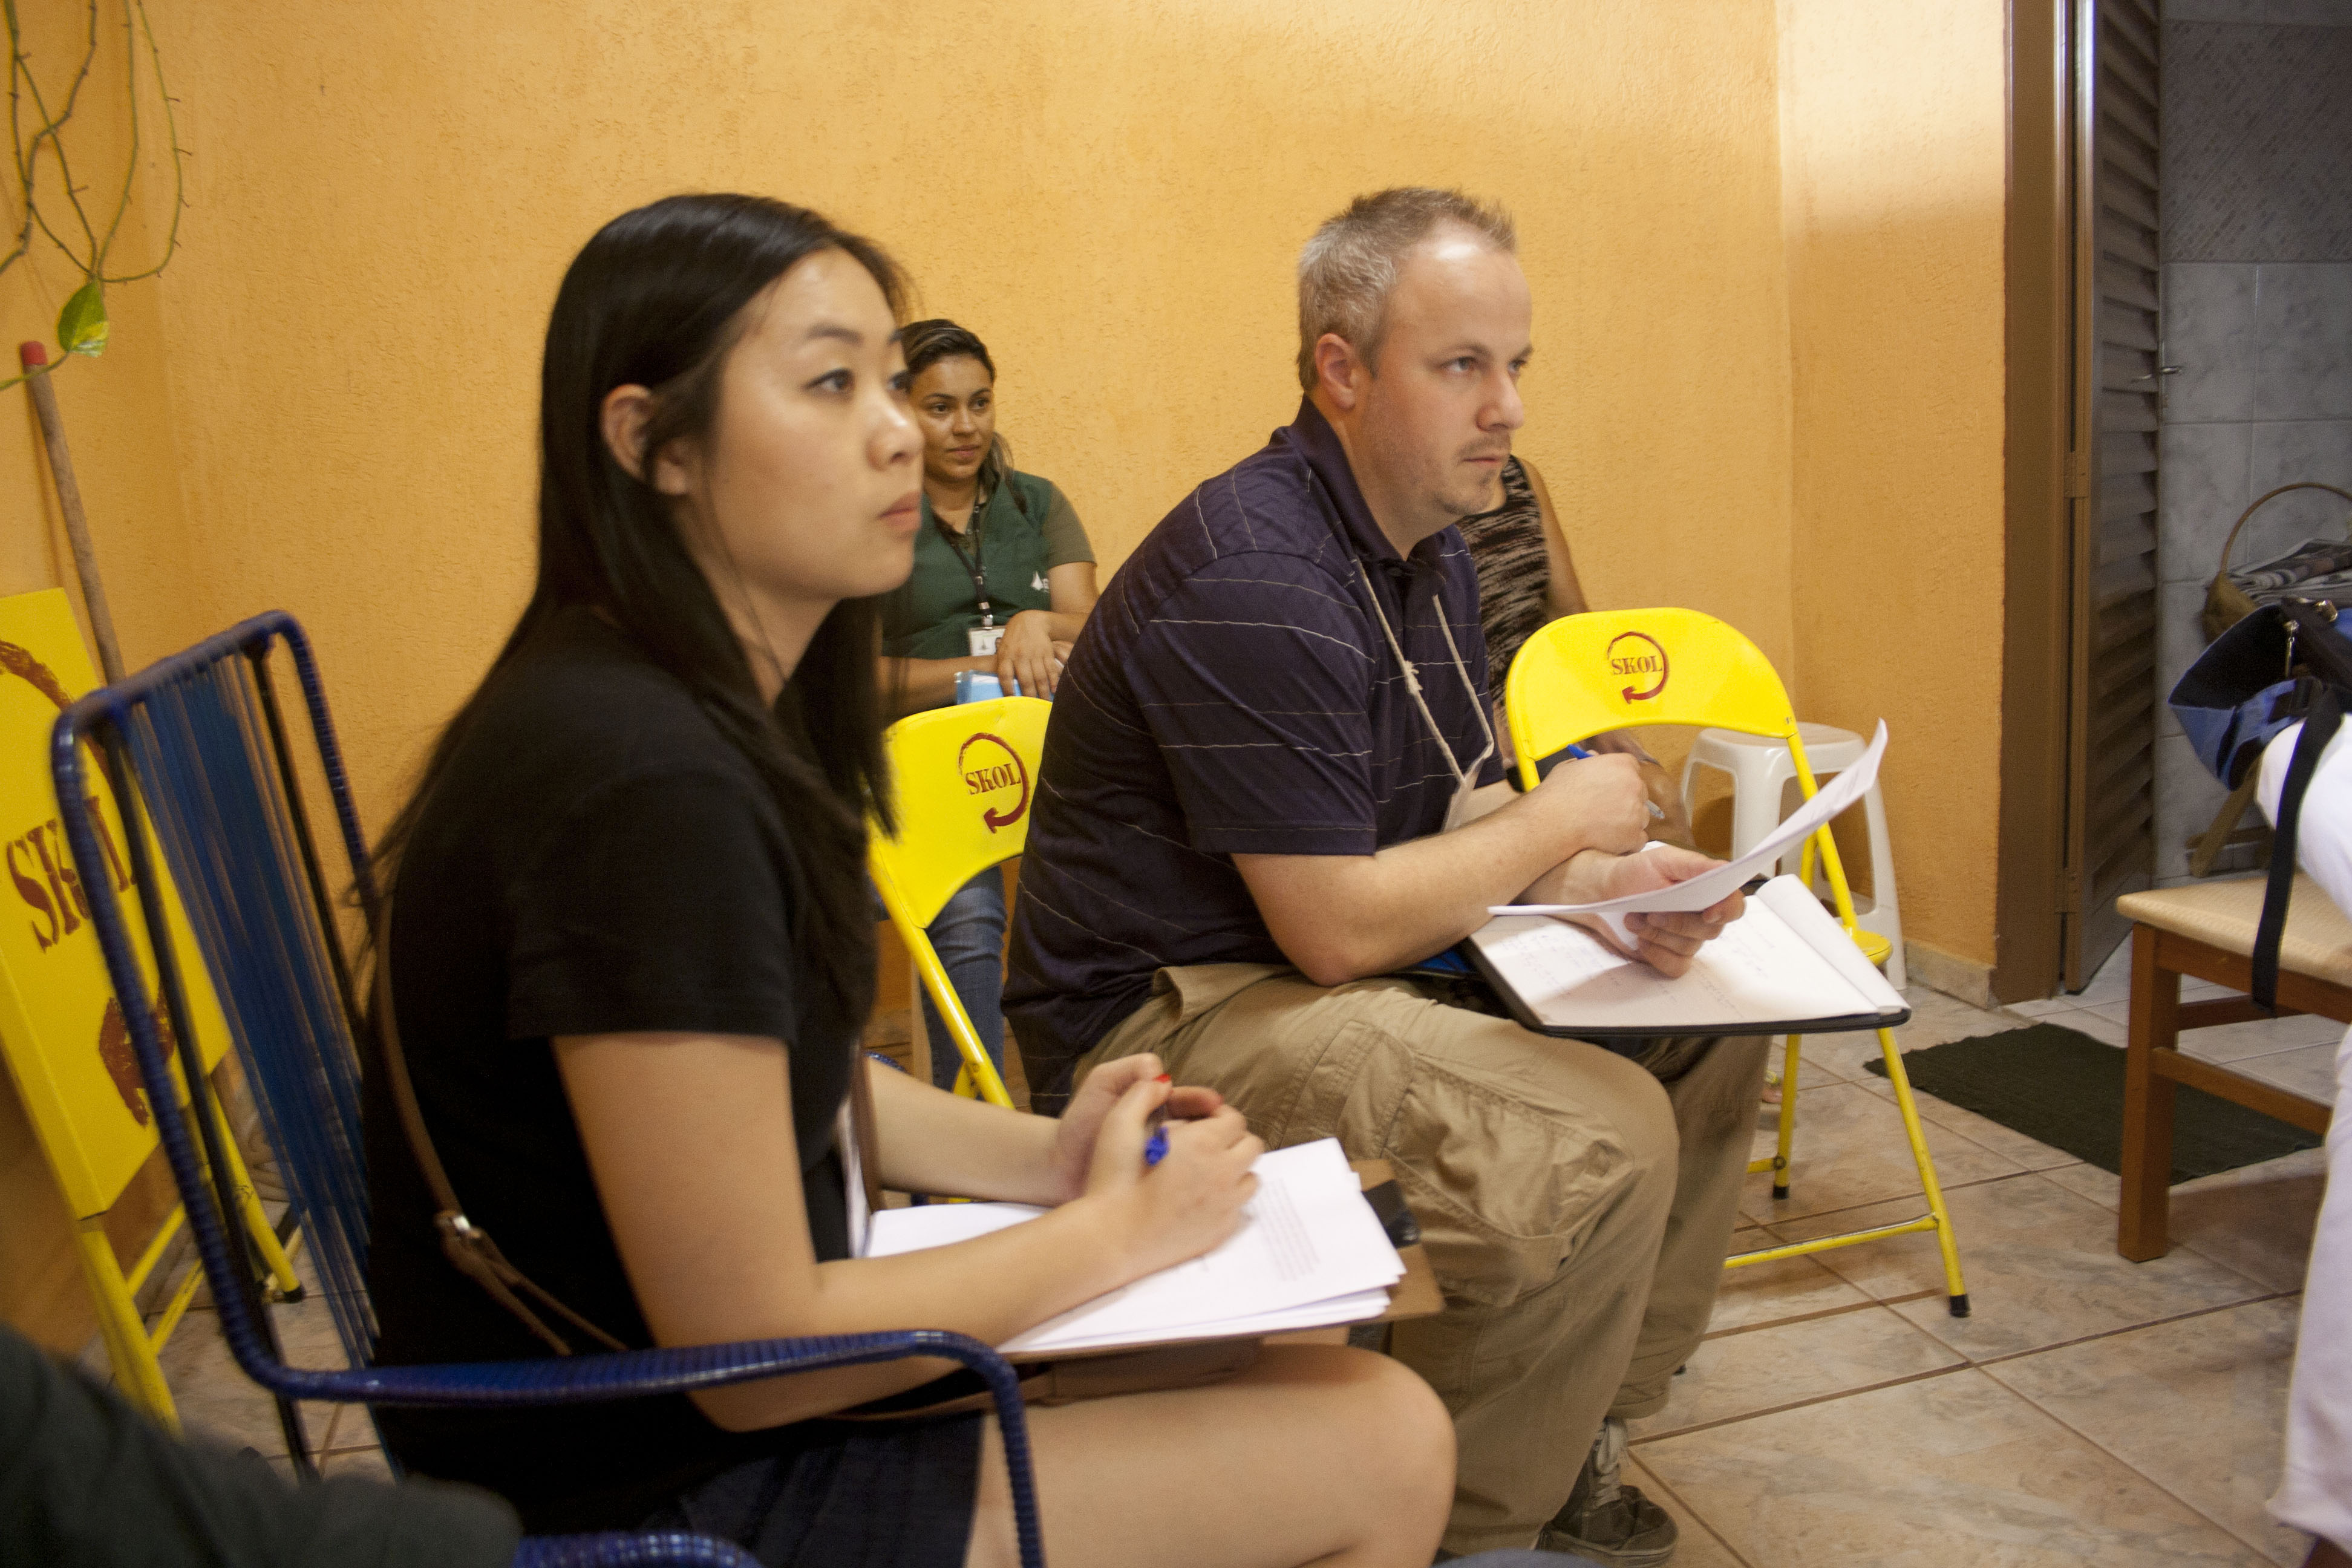 MSW student Evelina Giang, left, and USC MBA student Brian Slade in Brazil